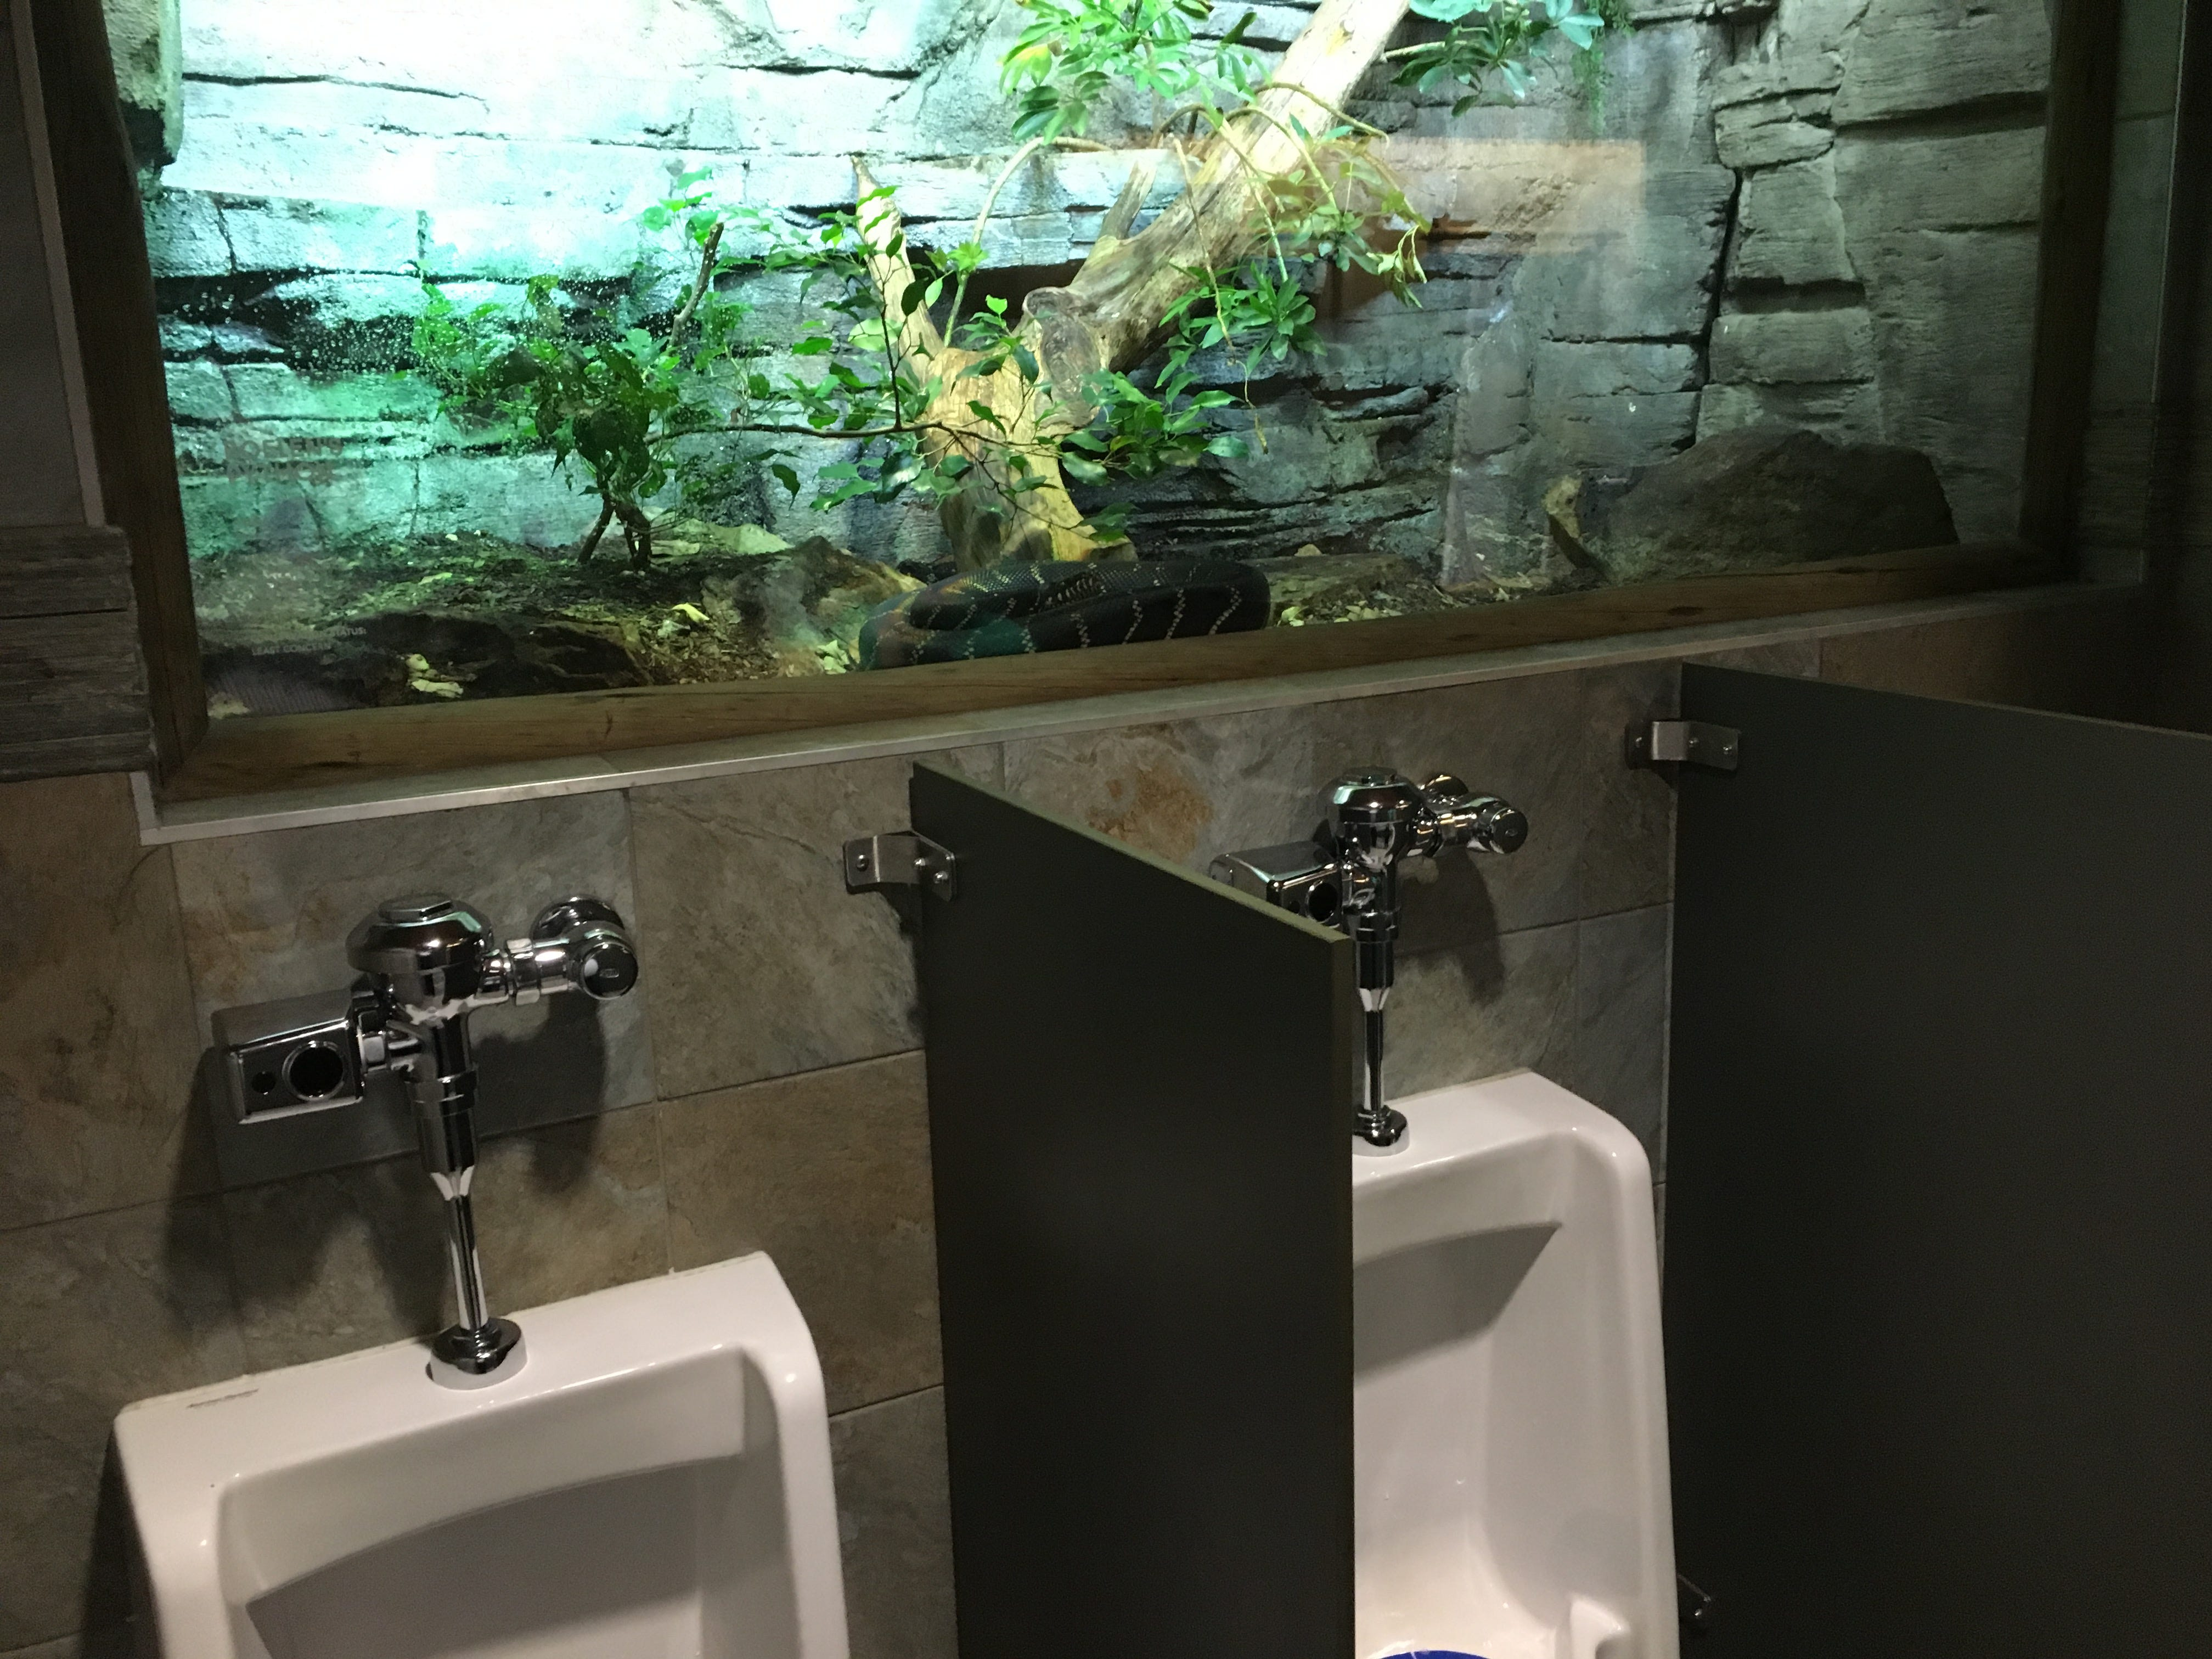 The men's room at the entrance of the Nashville Zoo has a giant snake in a tank above the urinal